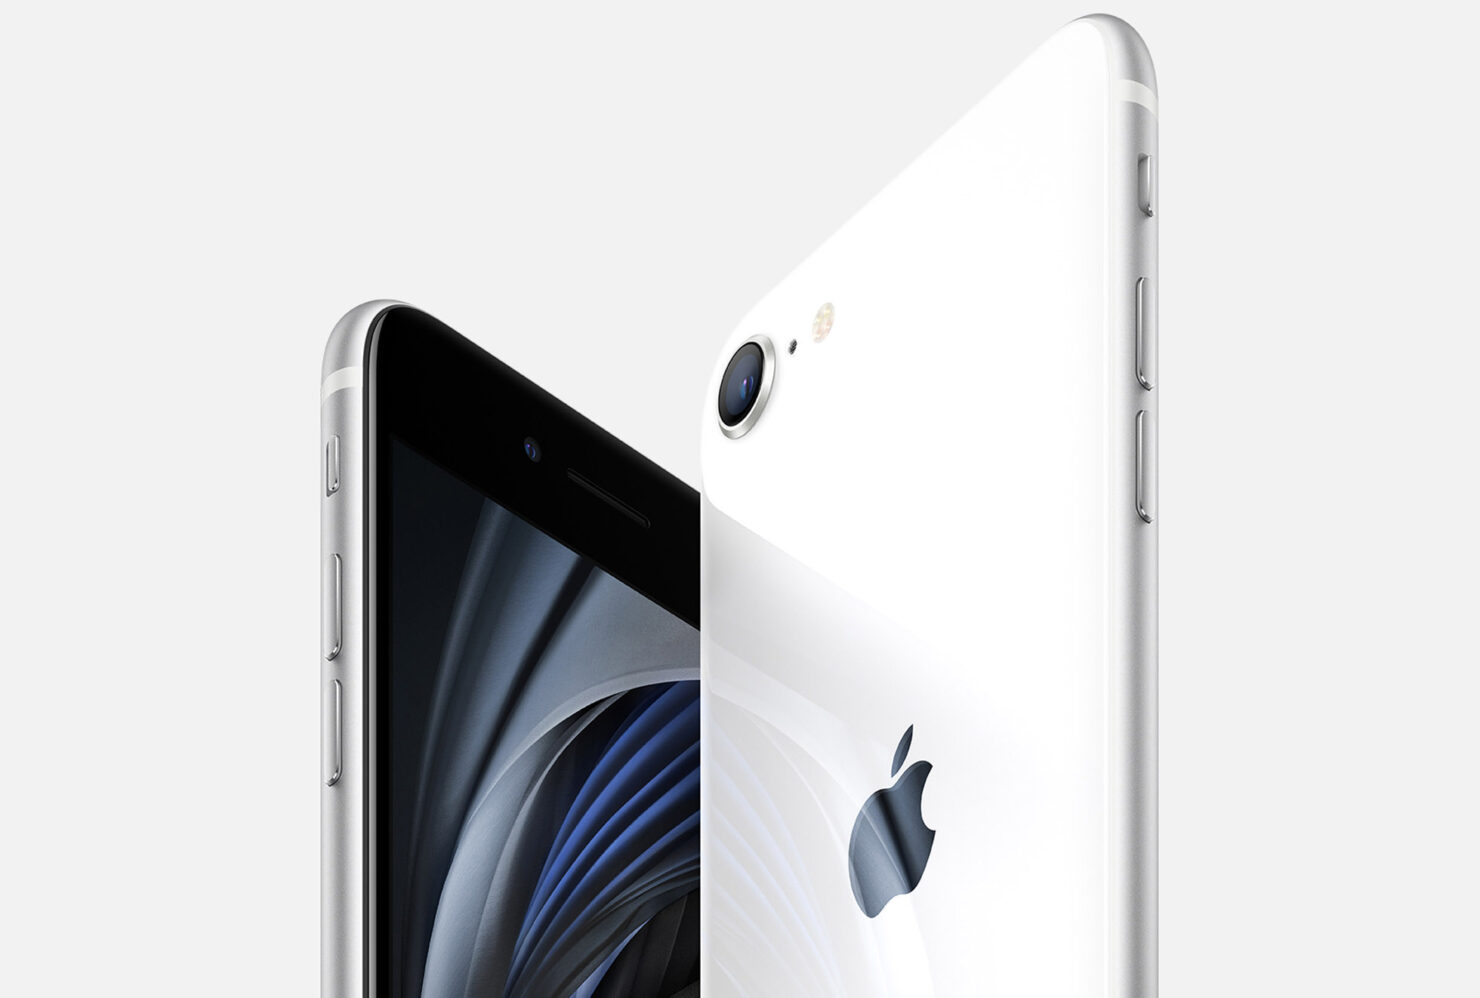 Apple's Slightly Slower B14 Bionic Might Not Exist After All, According to Cryptic Tweet